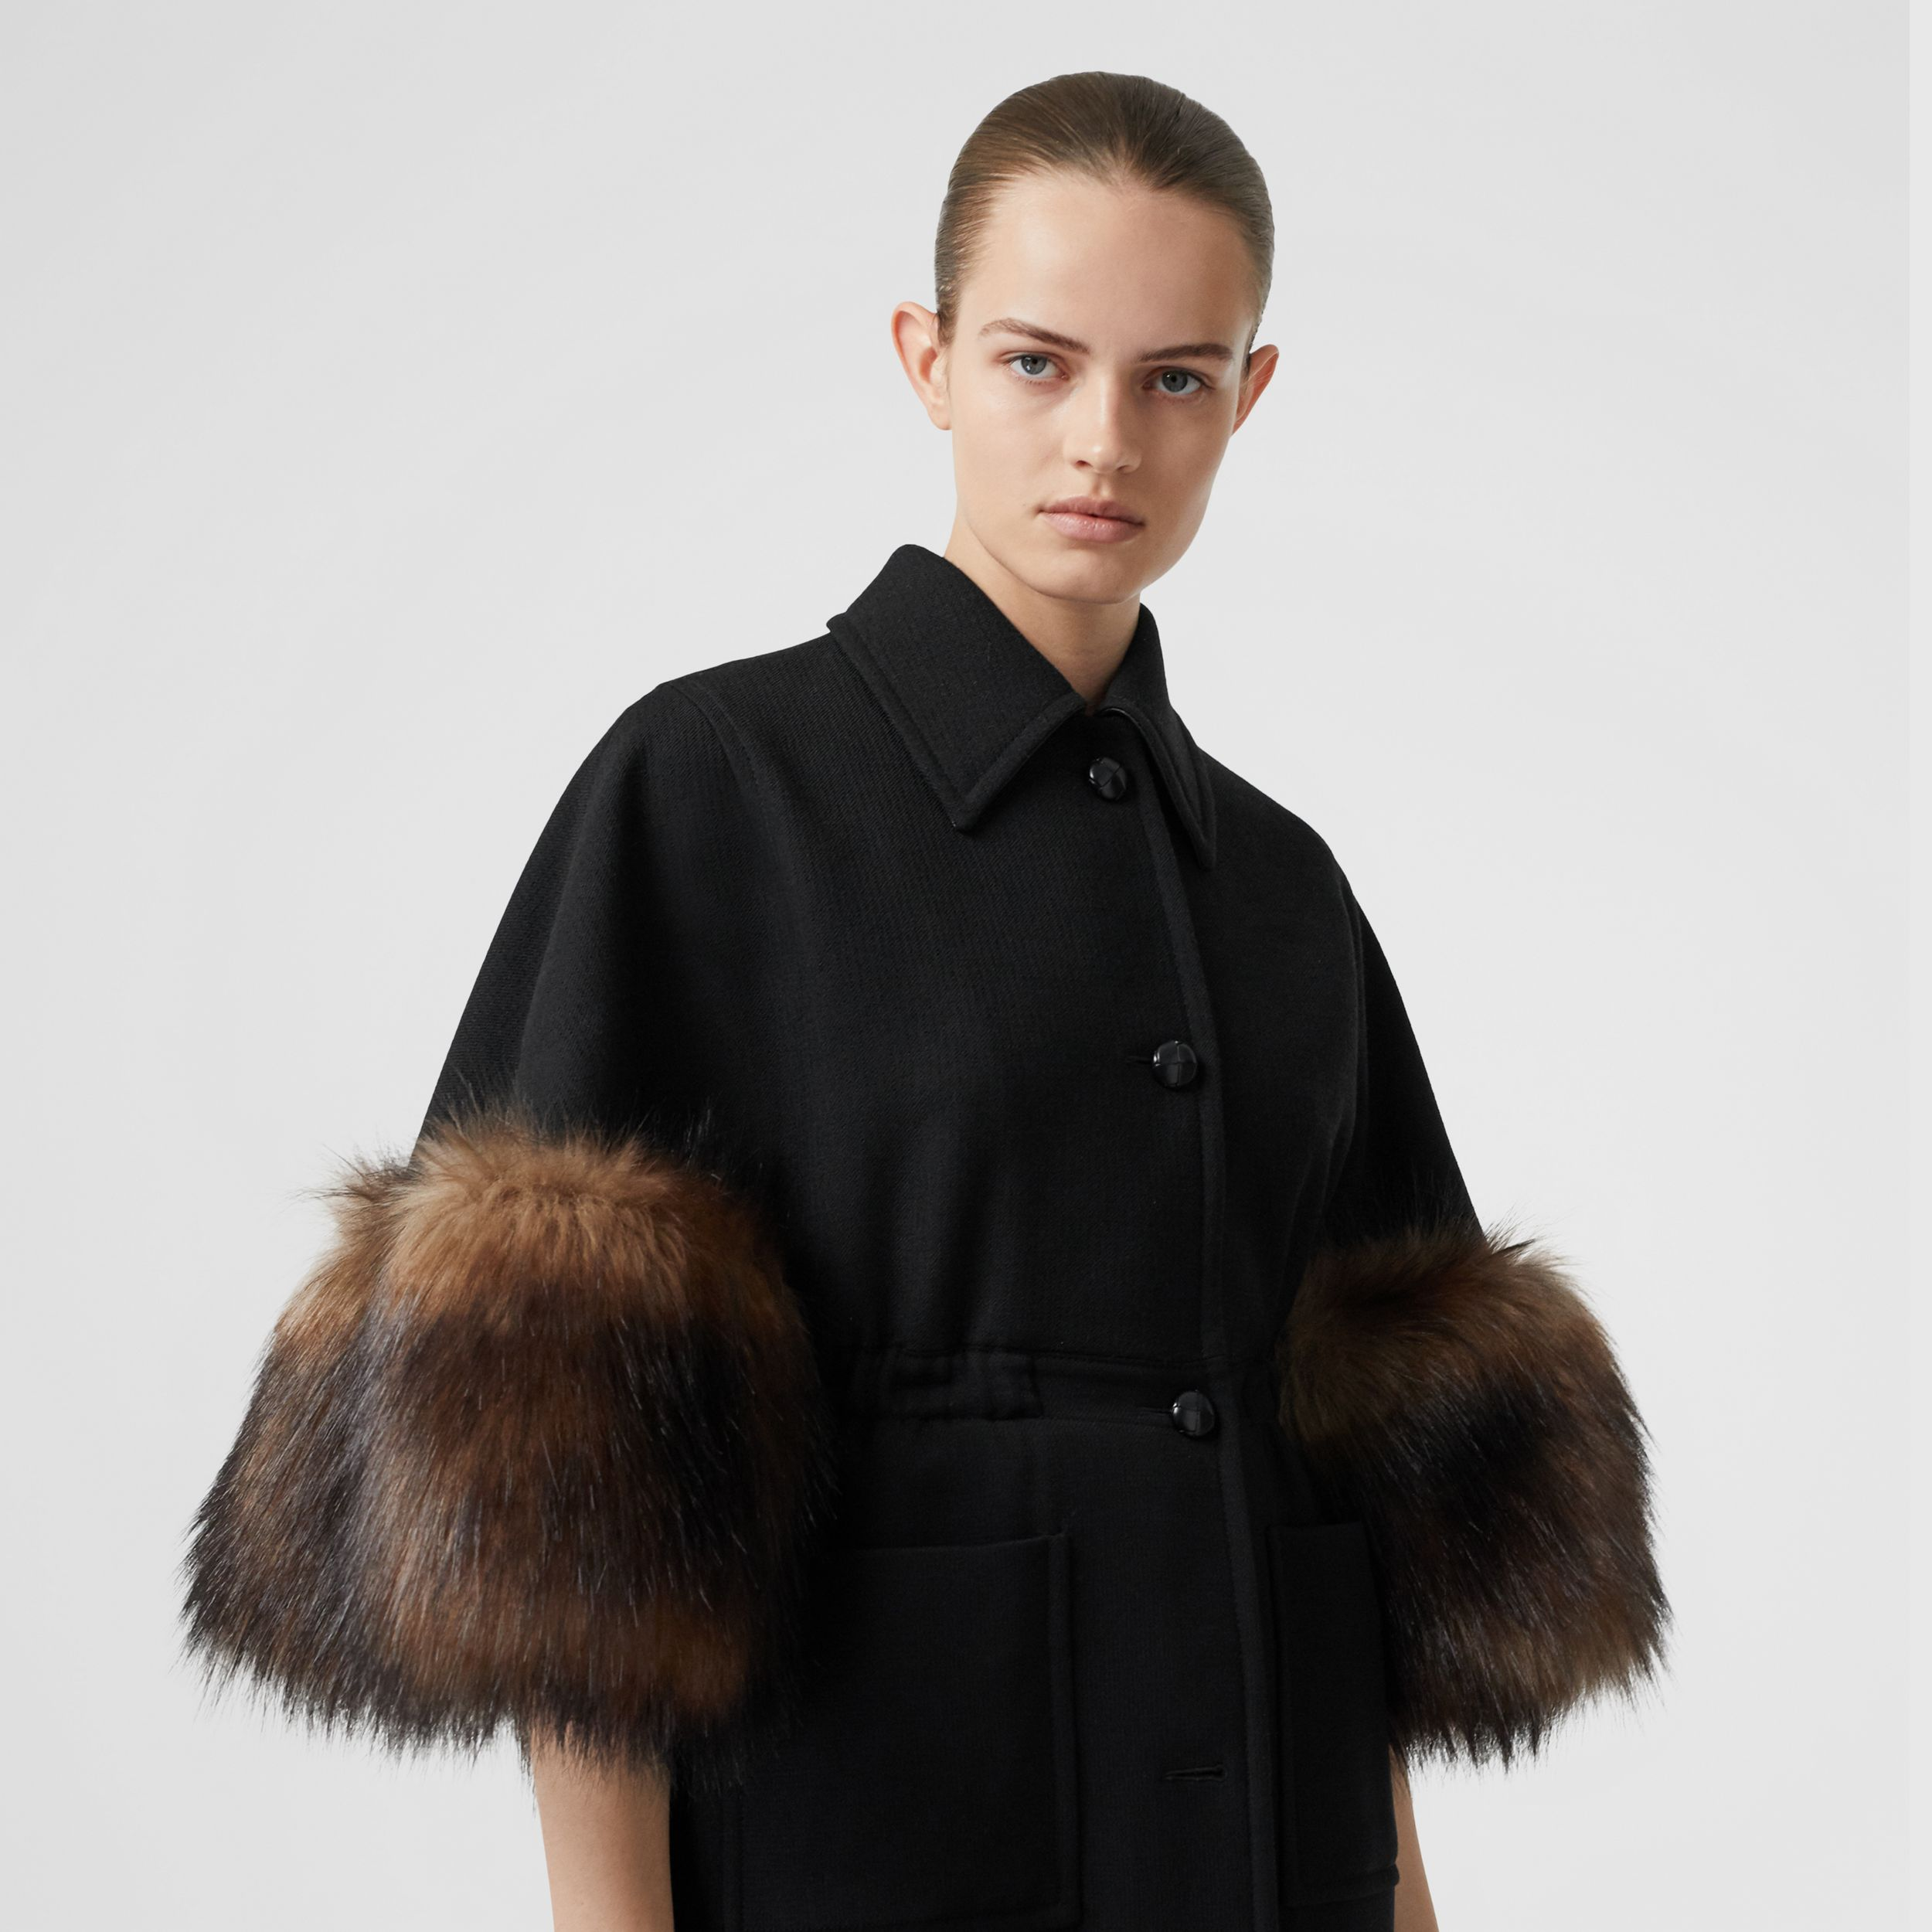 Faux Fur Trim Cape Detail Wool Blend Coat in Black - Women | Burberry United Kingdom - 2